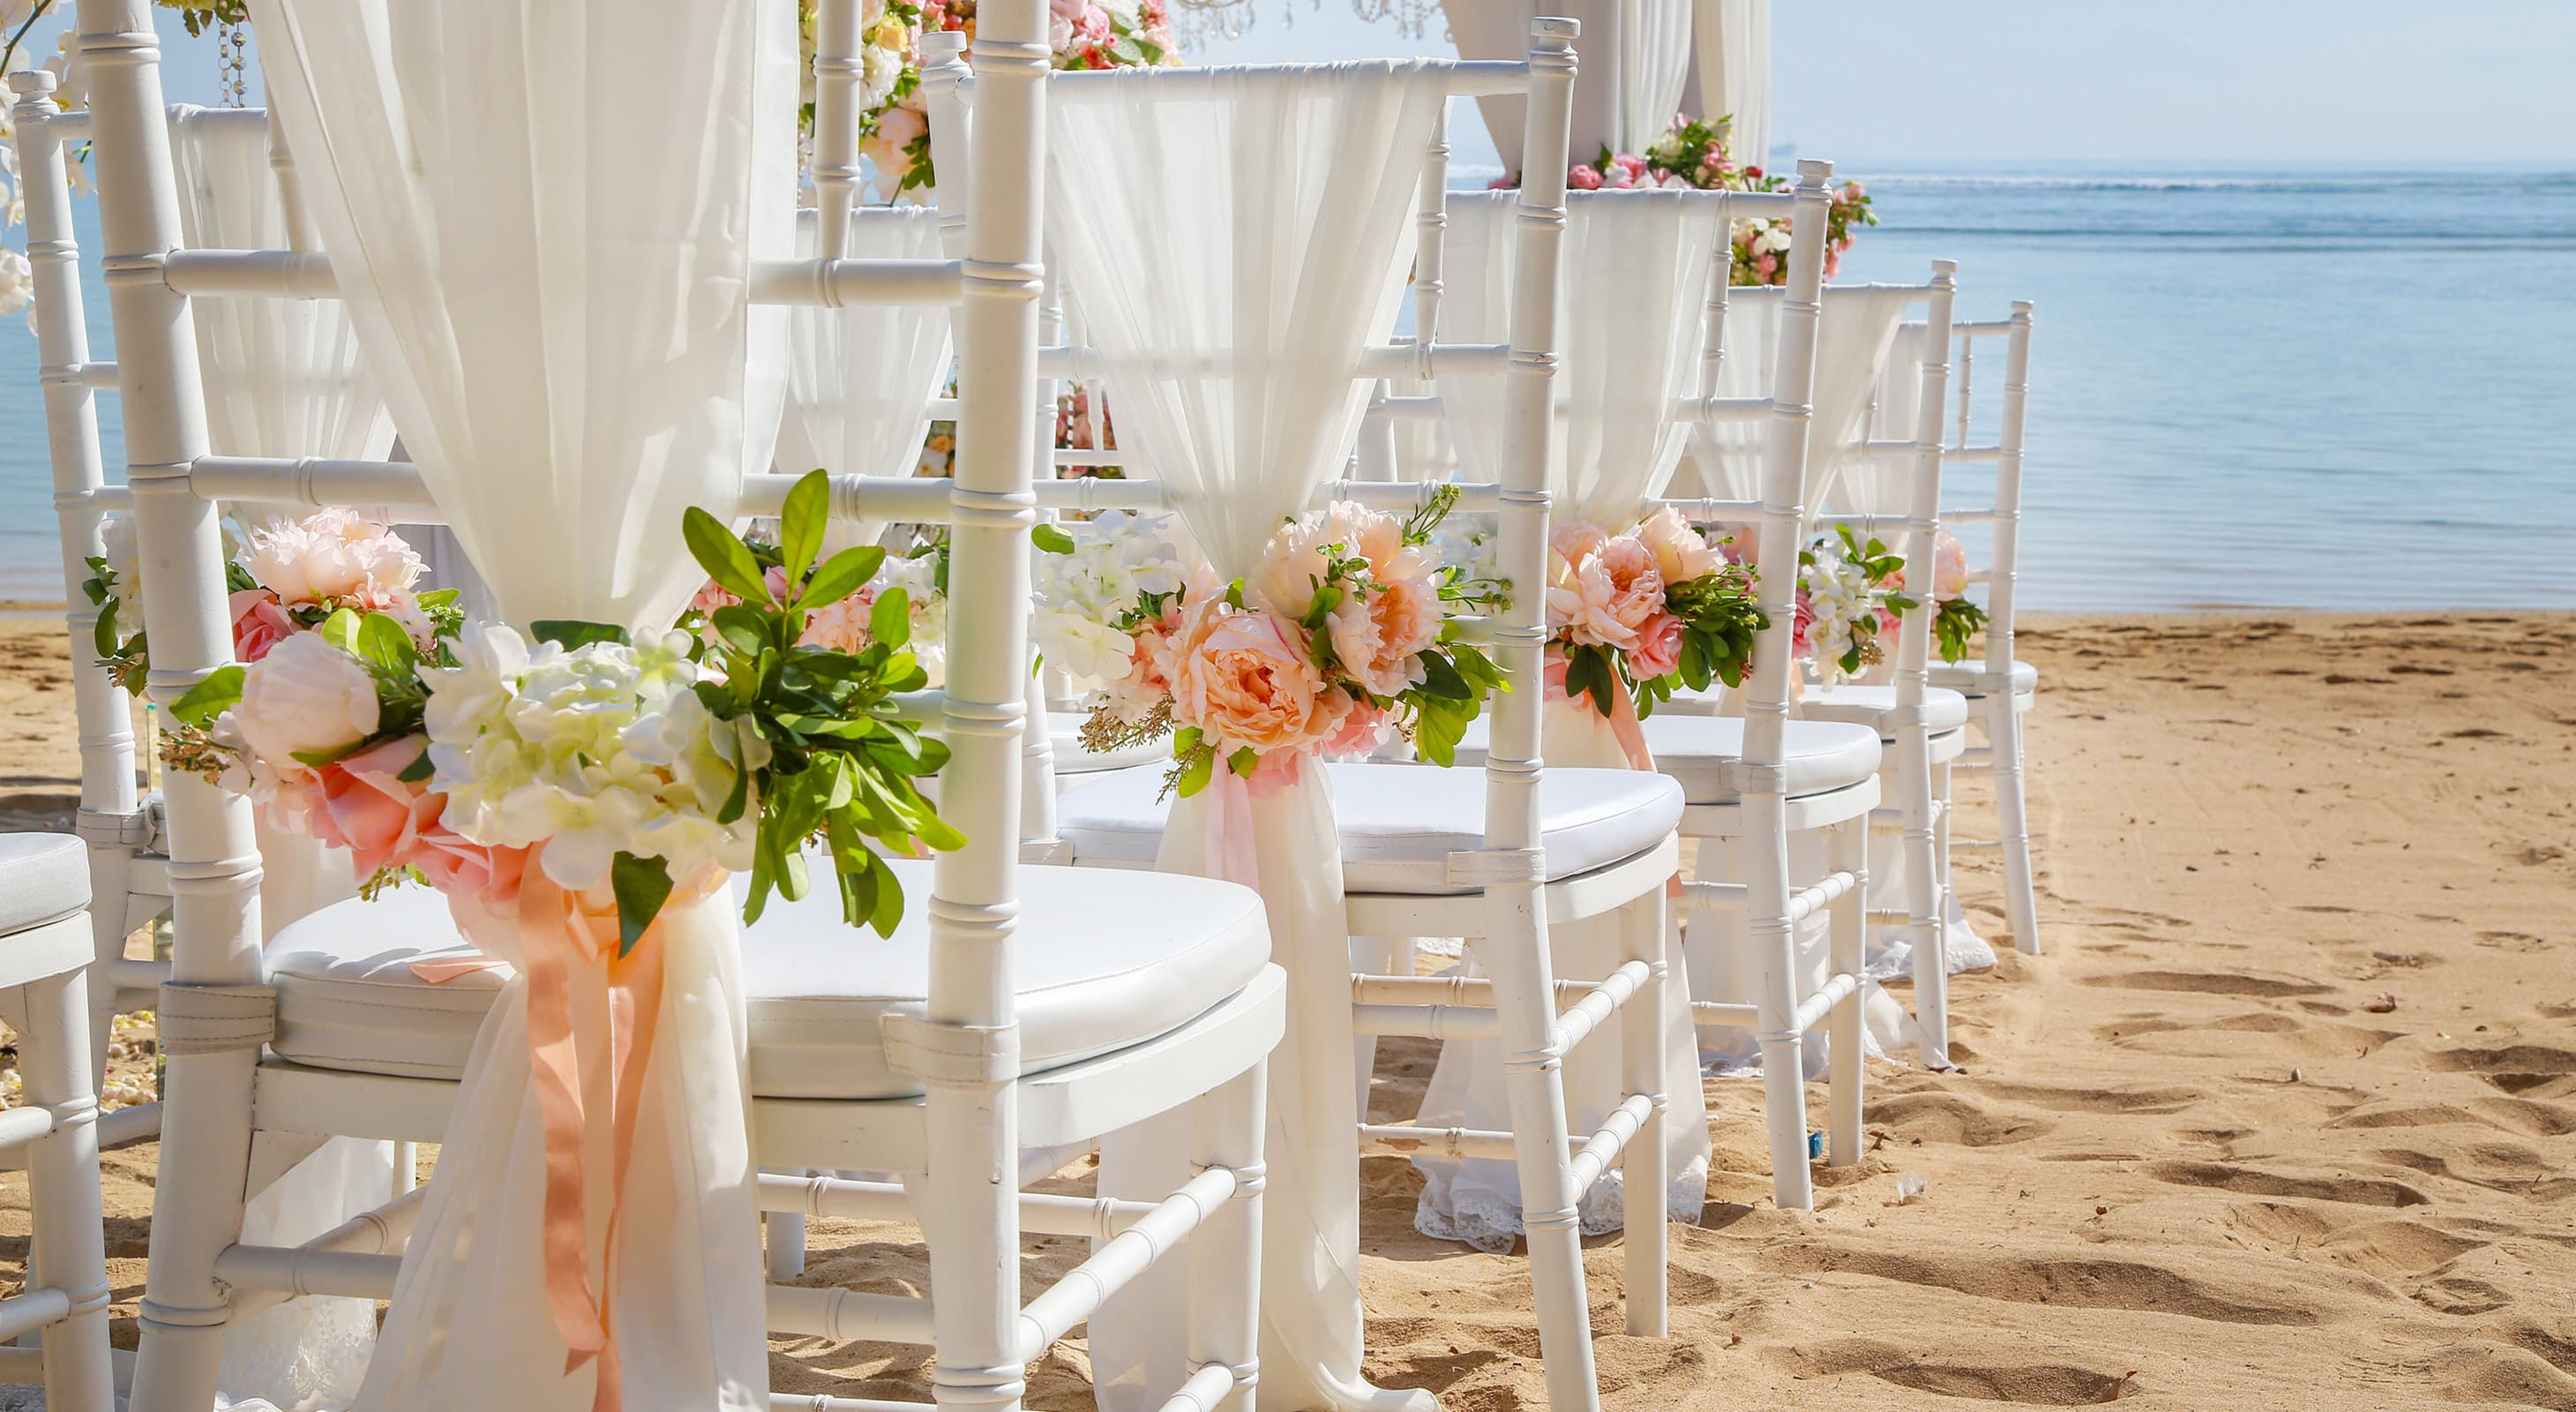 chairs set up for a wedding on the beach